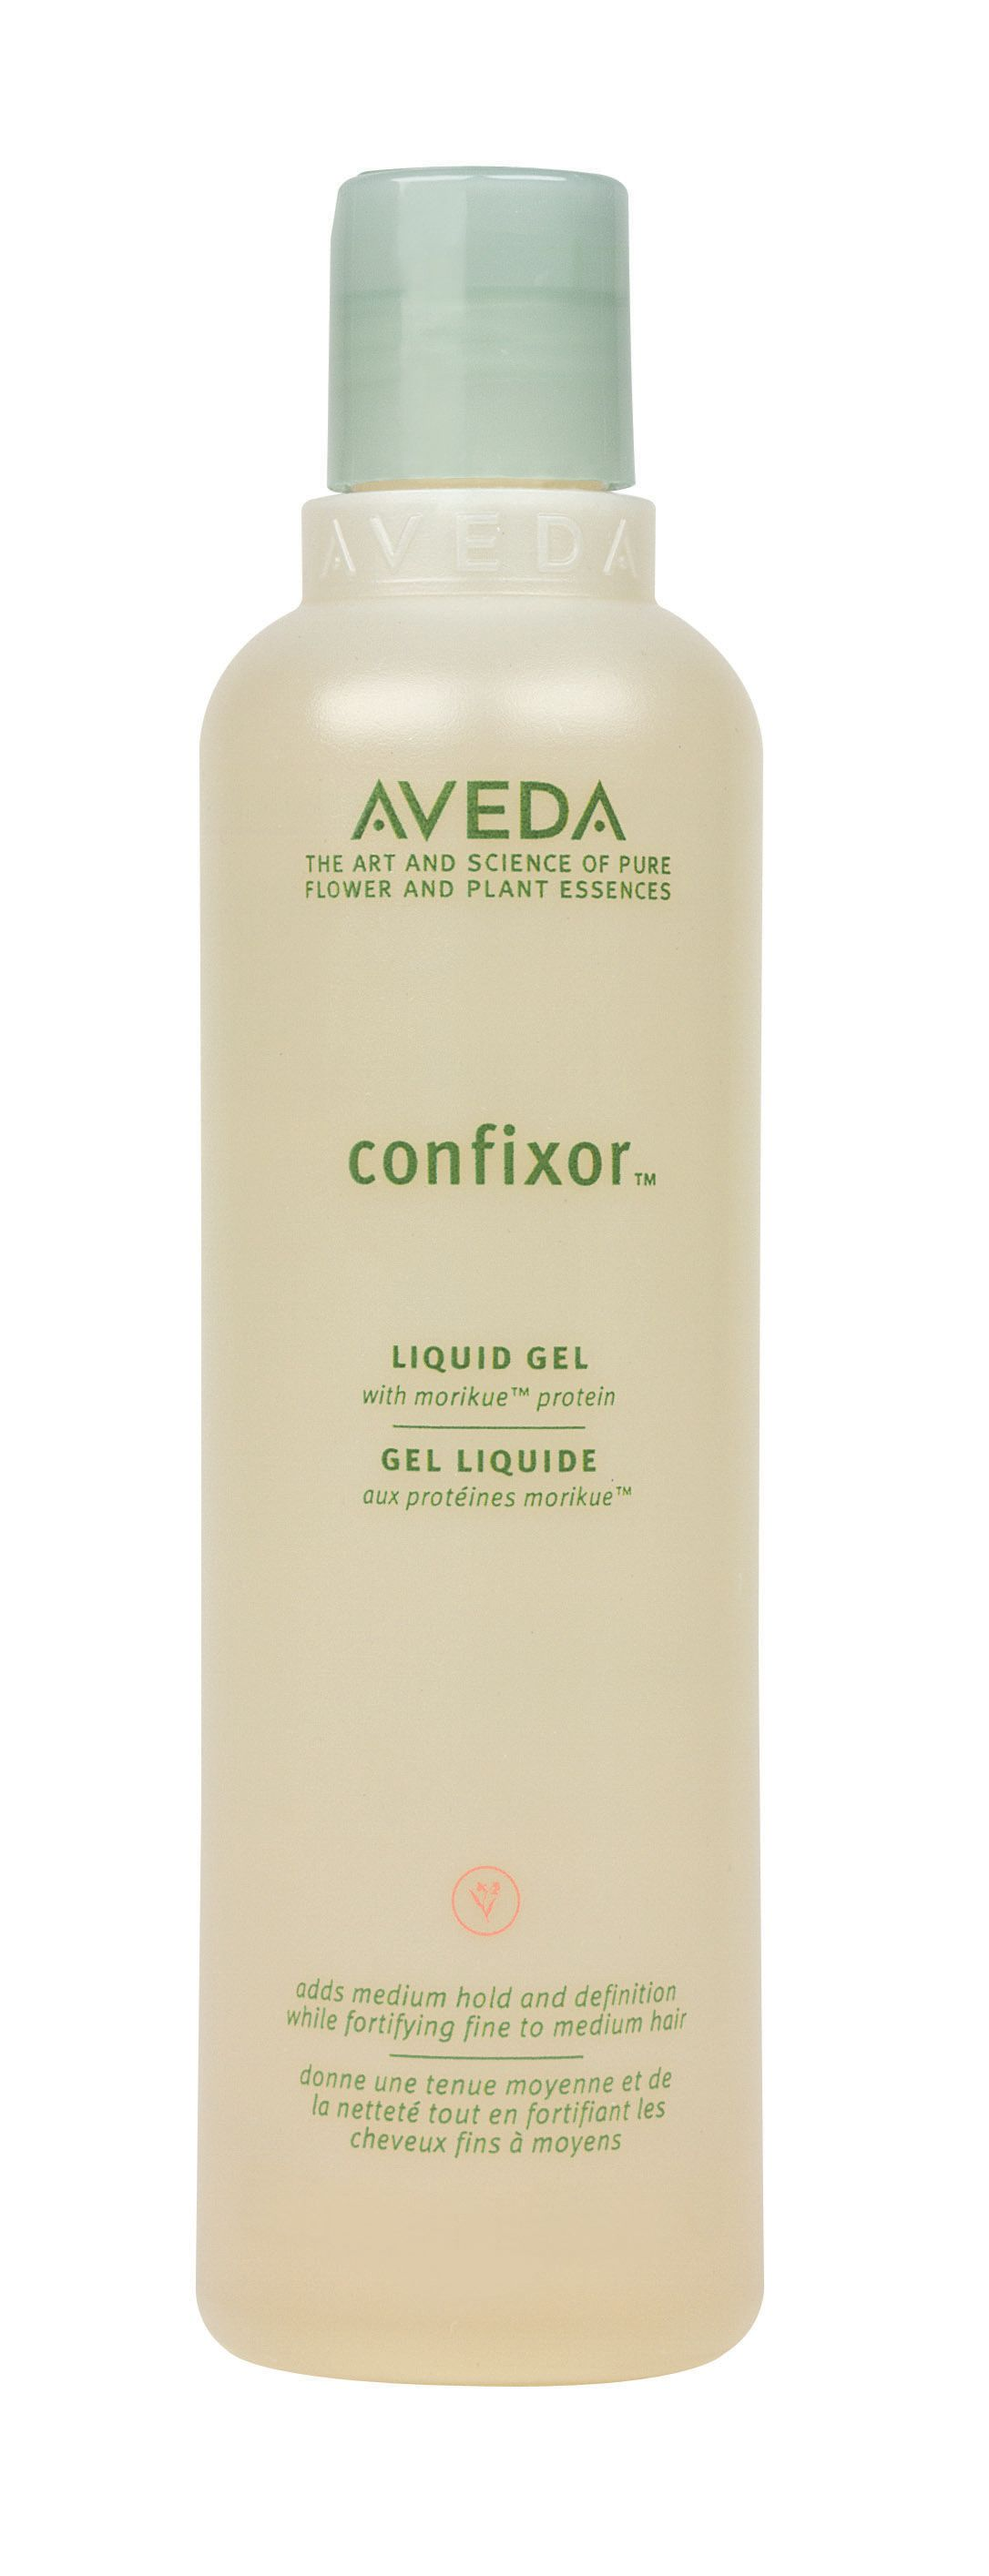 Confixor Liquid Gel 250ml